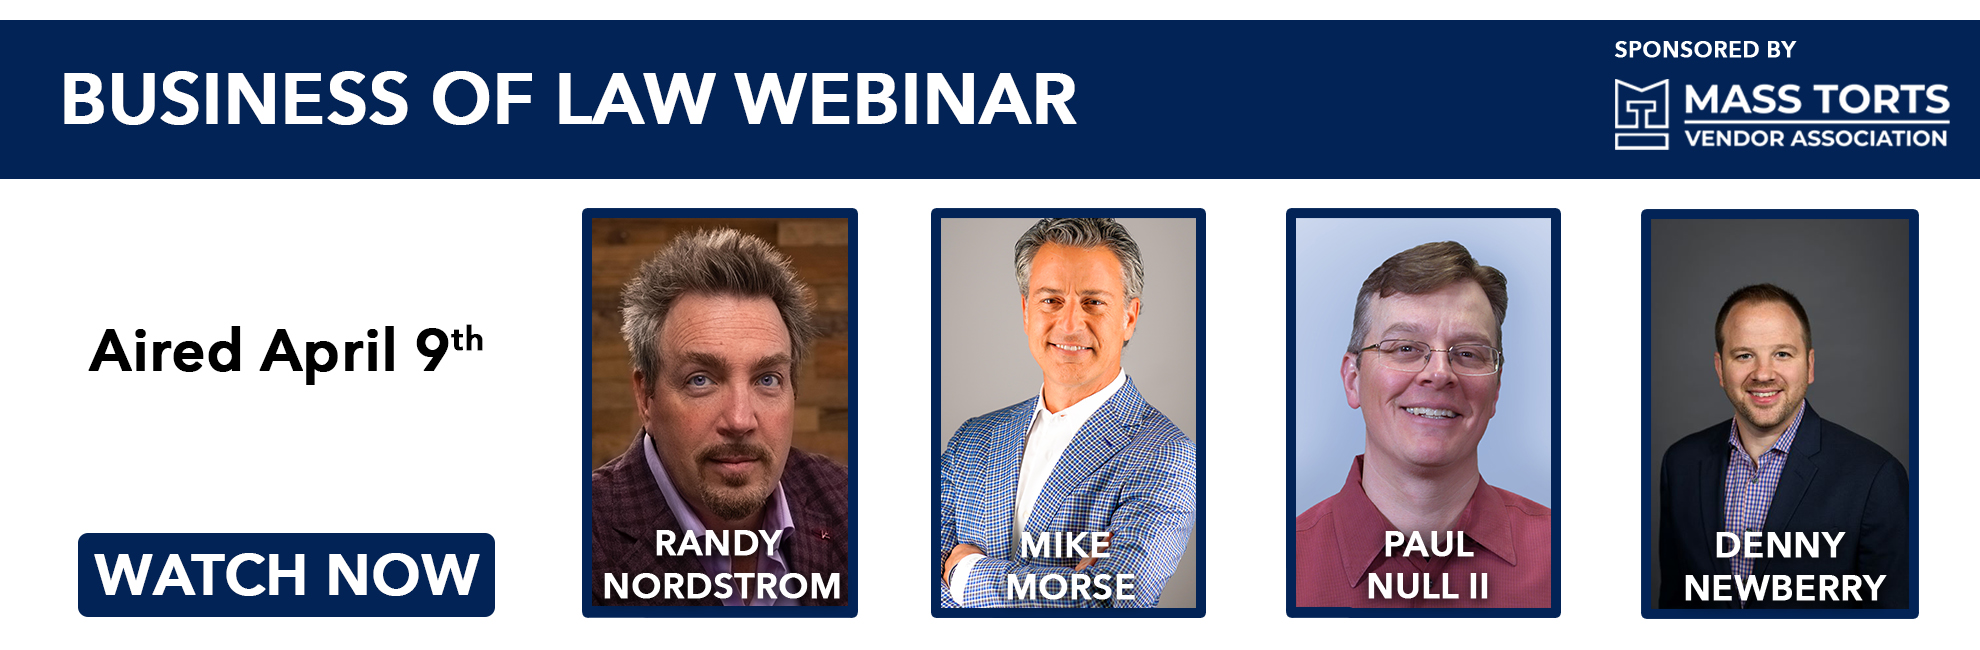 April 9th, 2020 - Business of Law Webinar